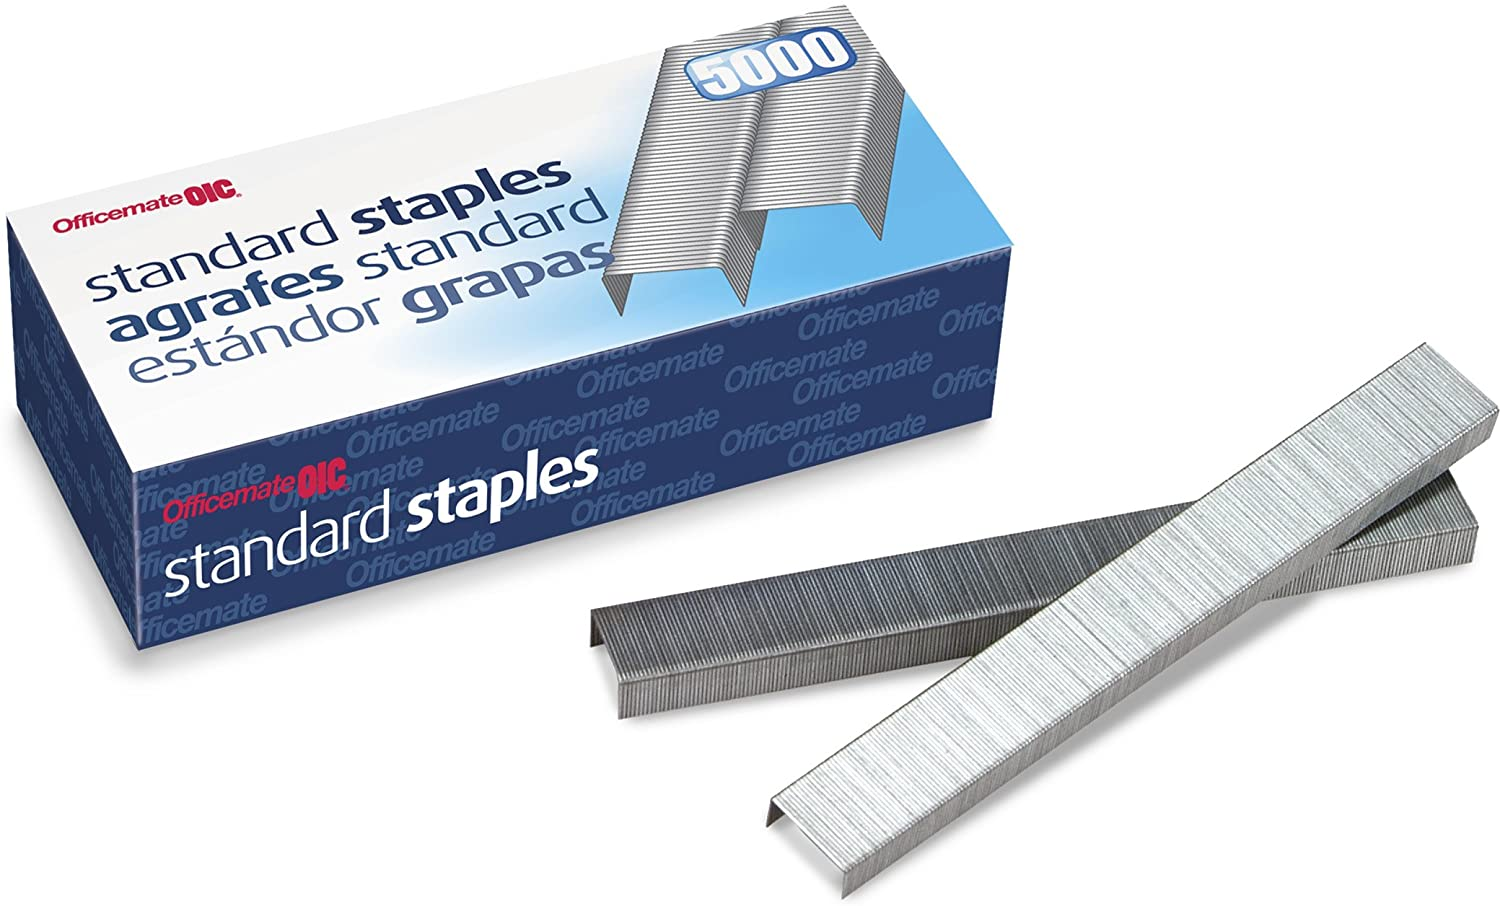 Officemate Standard Staples, 210 per Strip, 20 Sheets Capacity, 5,000 per Box (91900)